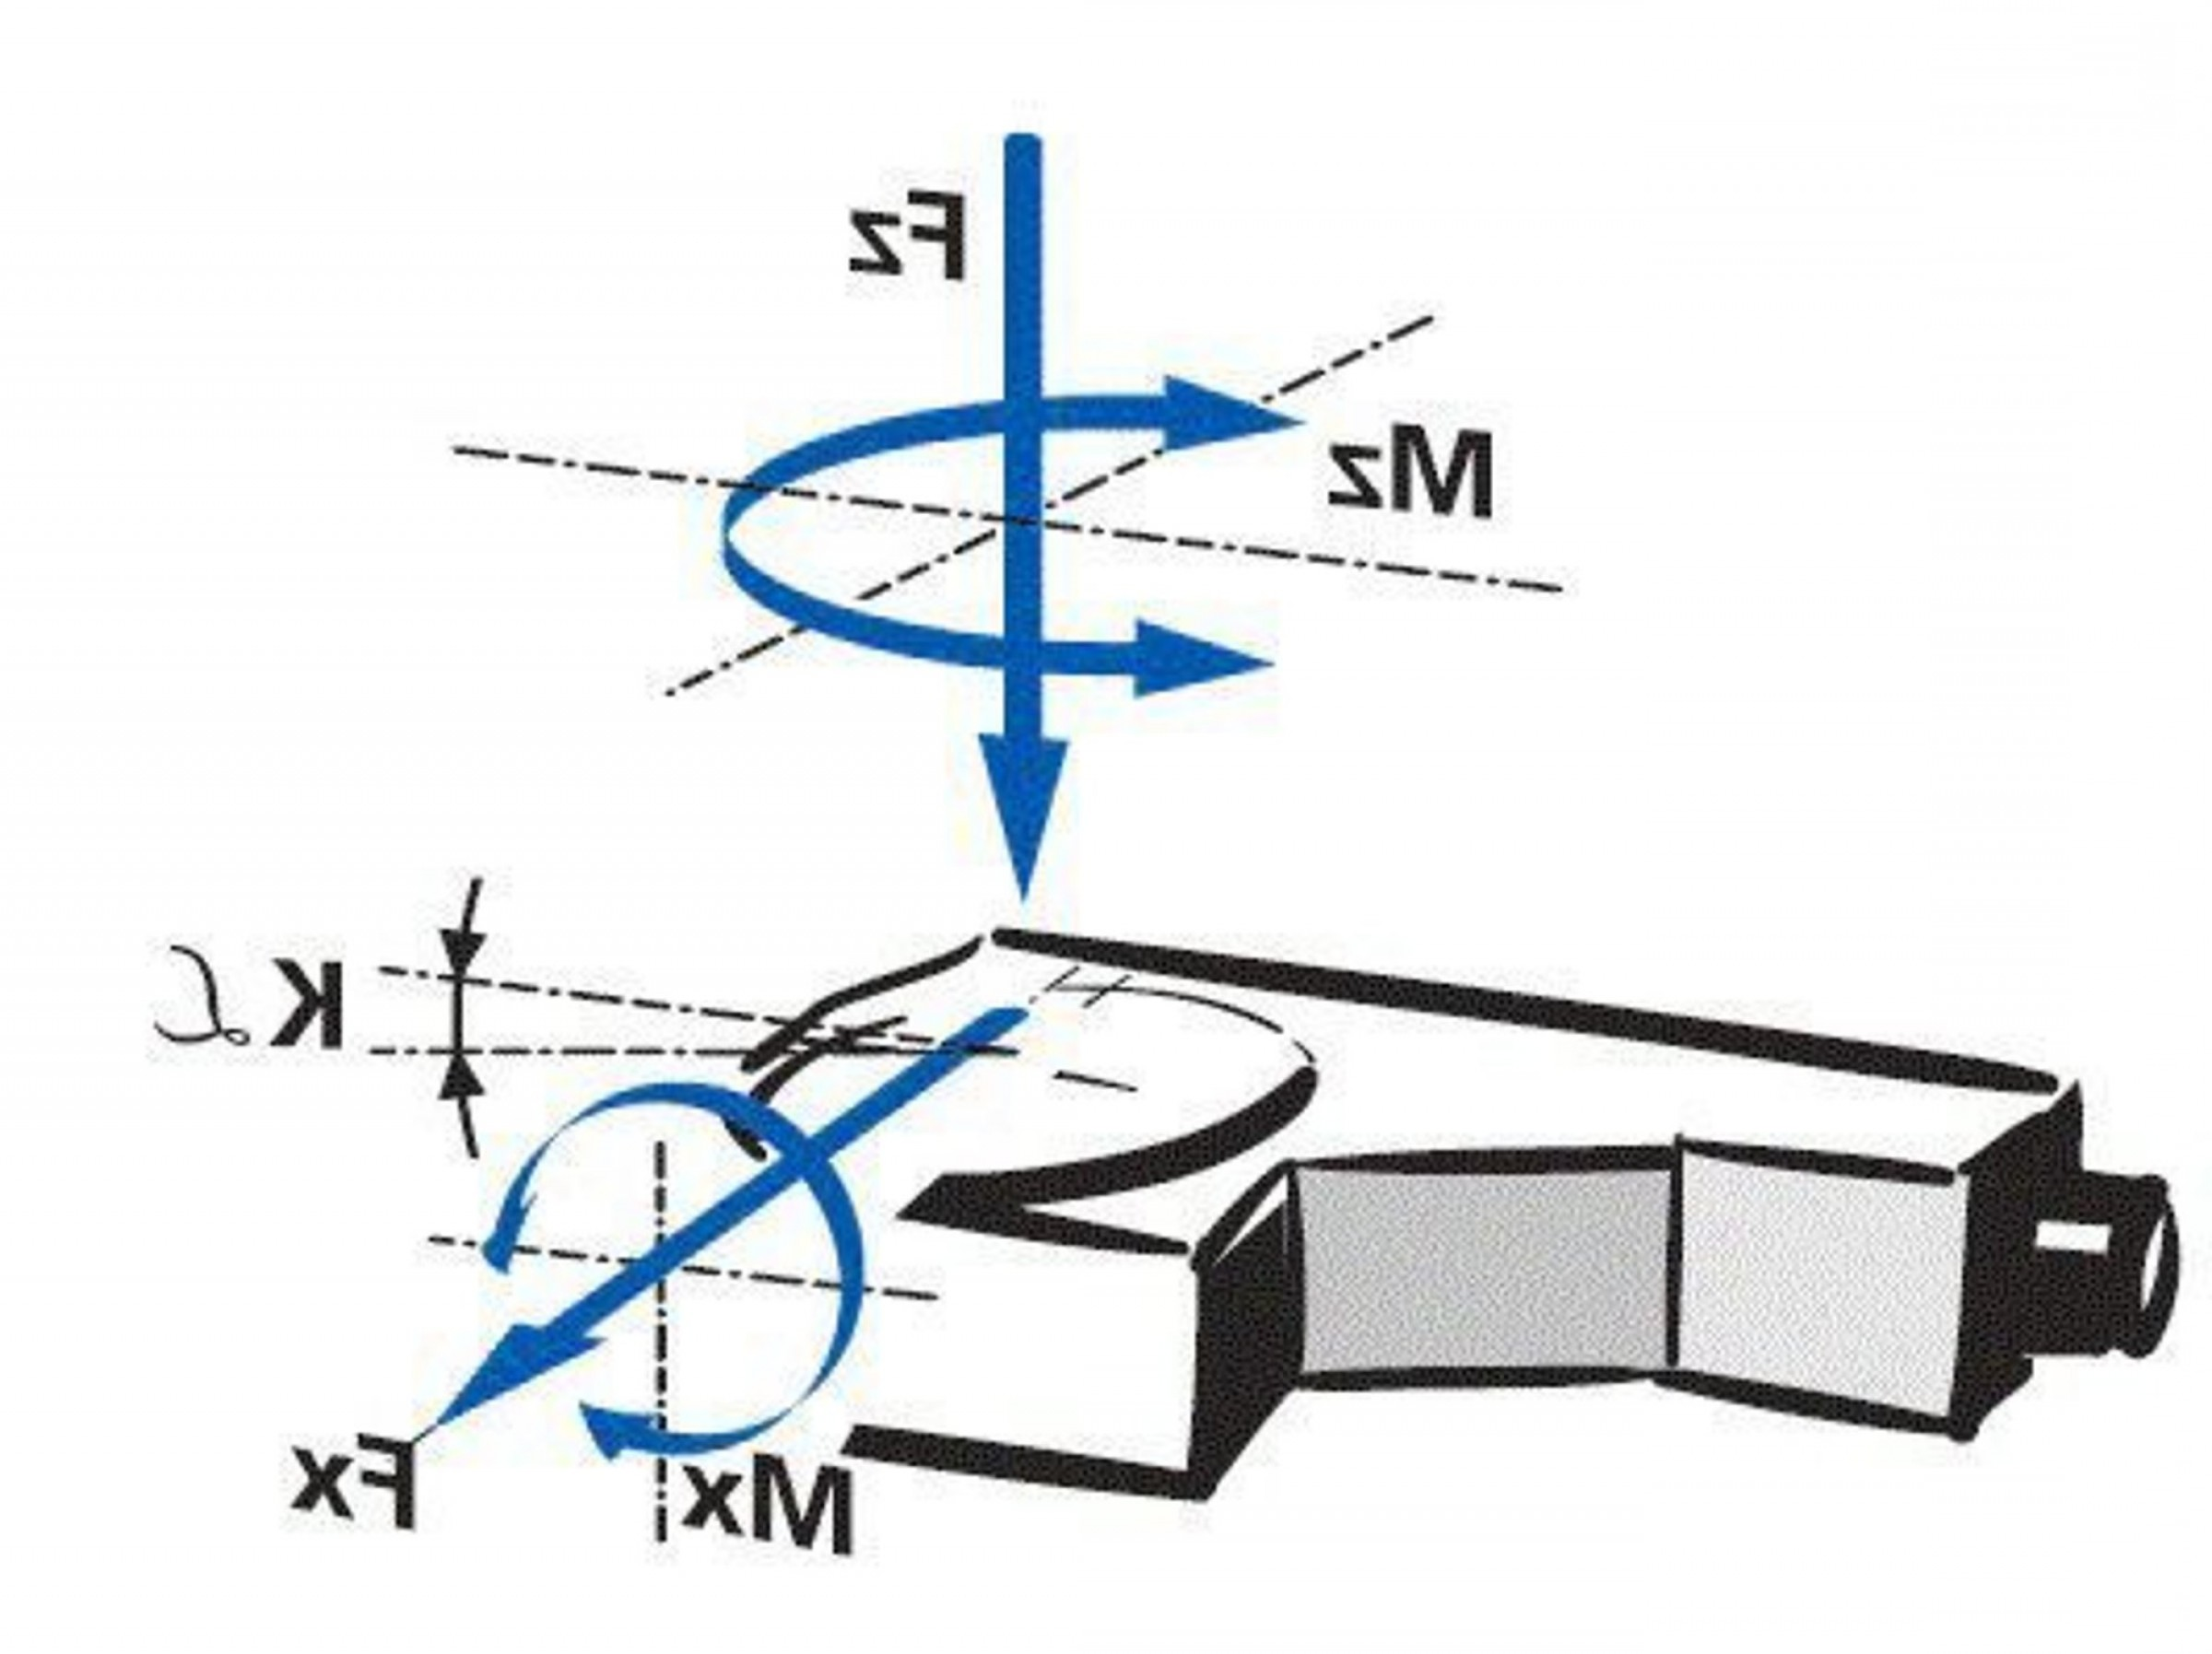 Rotational Kinematics Diagram Of Vectors: Rs Compact Rotation Stage